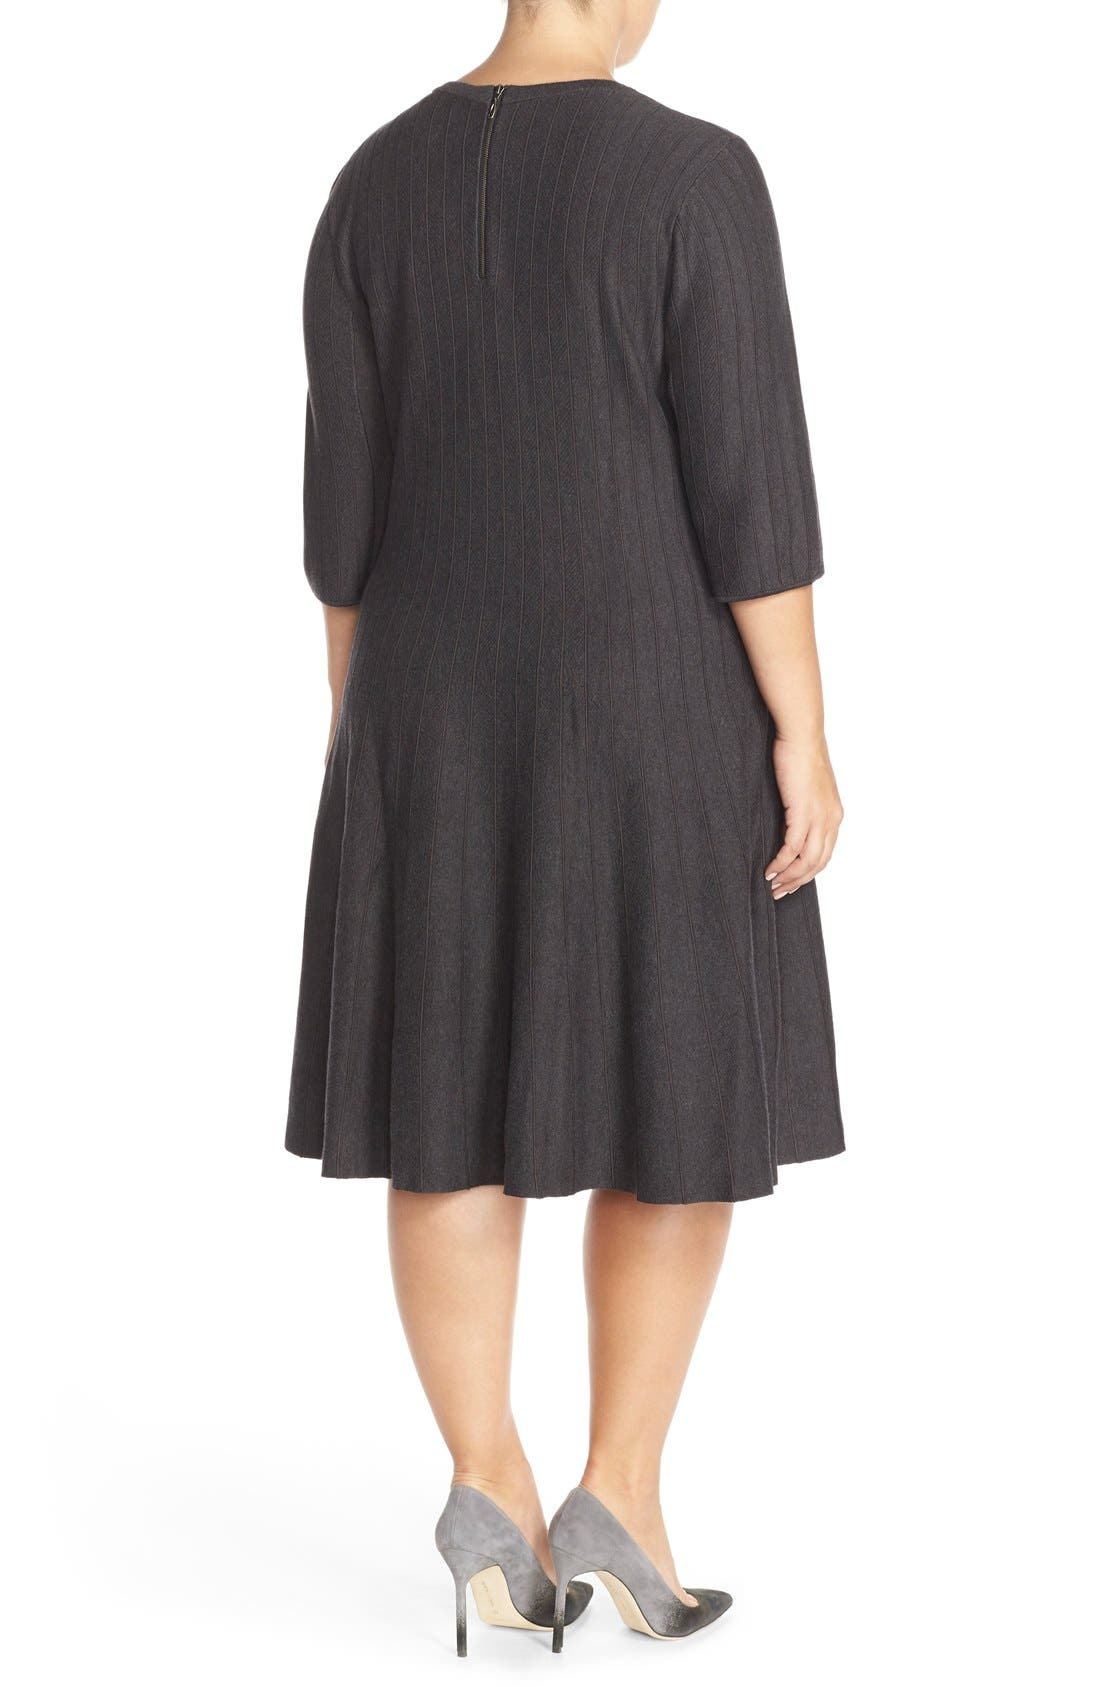 'Twirl' Elbow Sleeve Knit Fit & Flare Dress,                             Alternate thumbnail 3, color,                             PHANTOM HEATHER